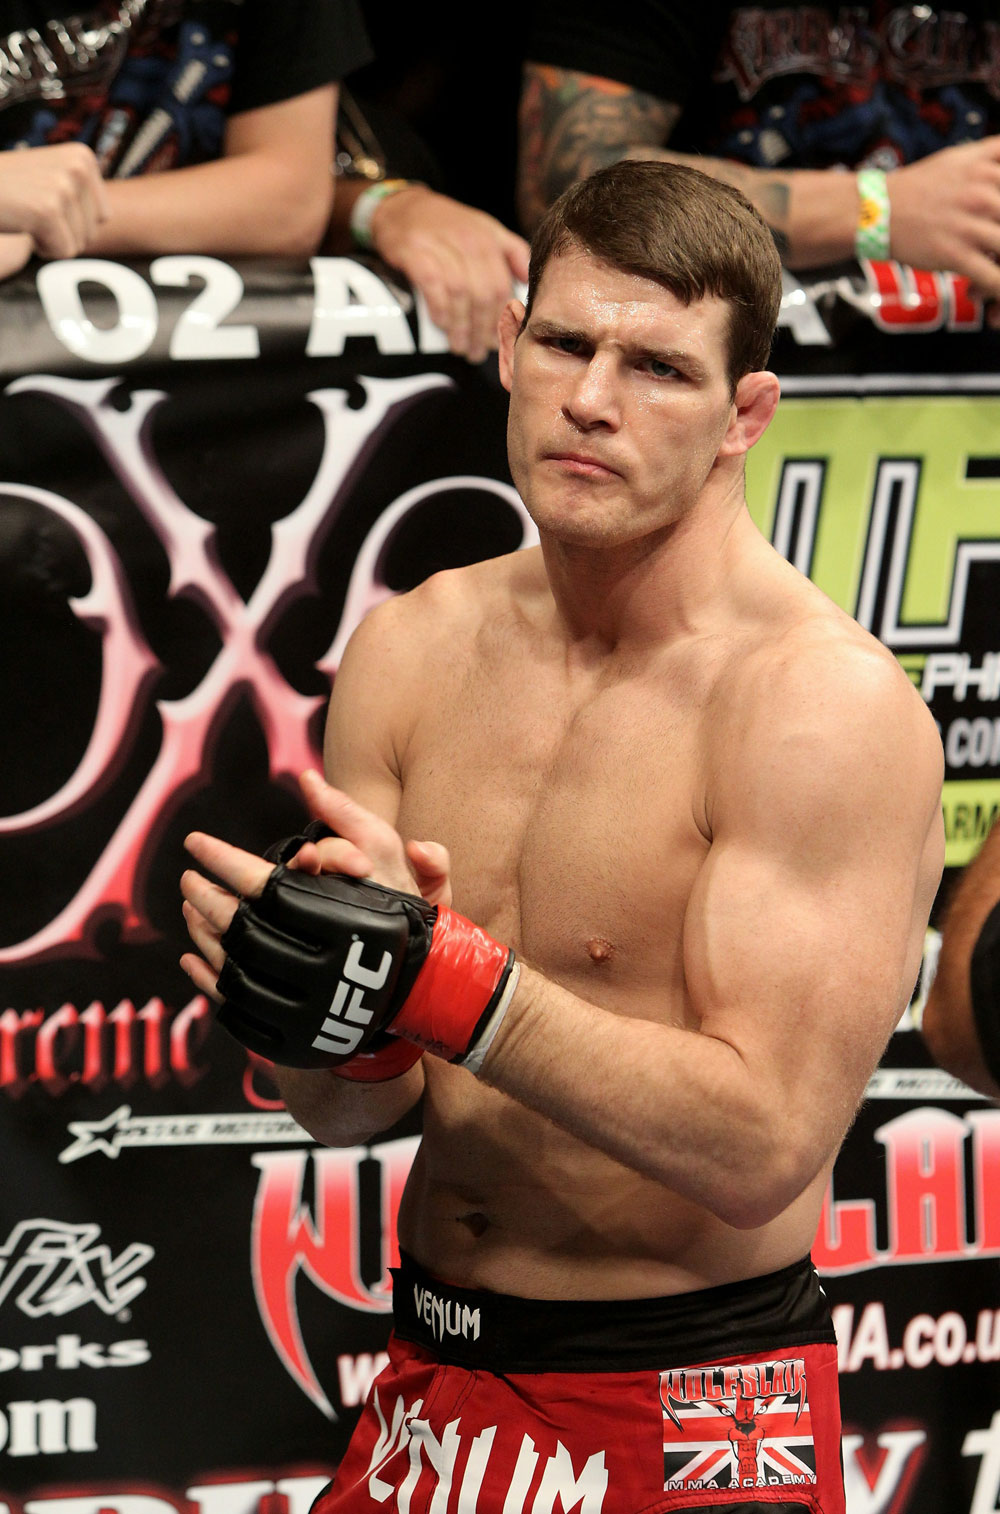 UFC 120: Michael Bisping before the fight.